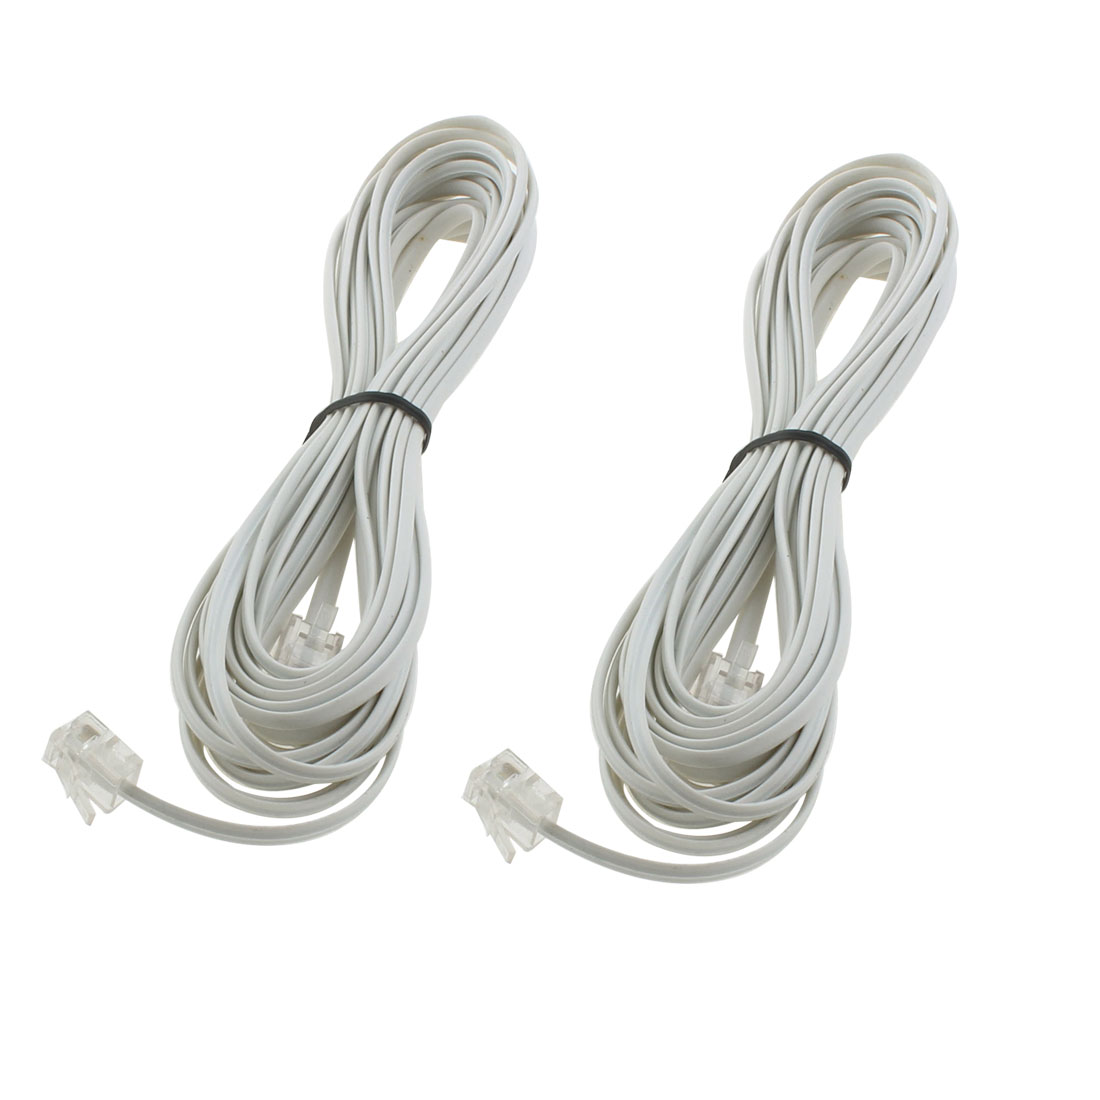 Unique Bargains 5M RJ11 6P2C Modular Telephone Modem Extension Line Cord Cable Wire 2pcs